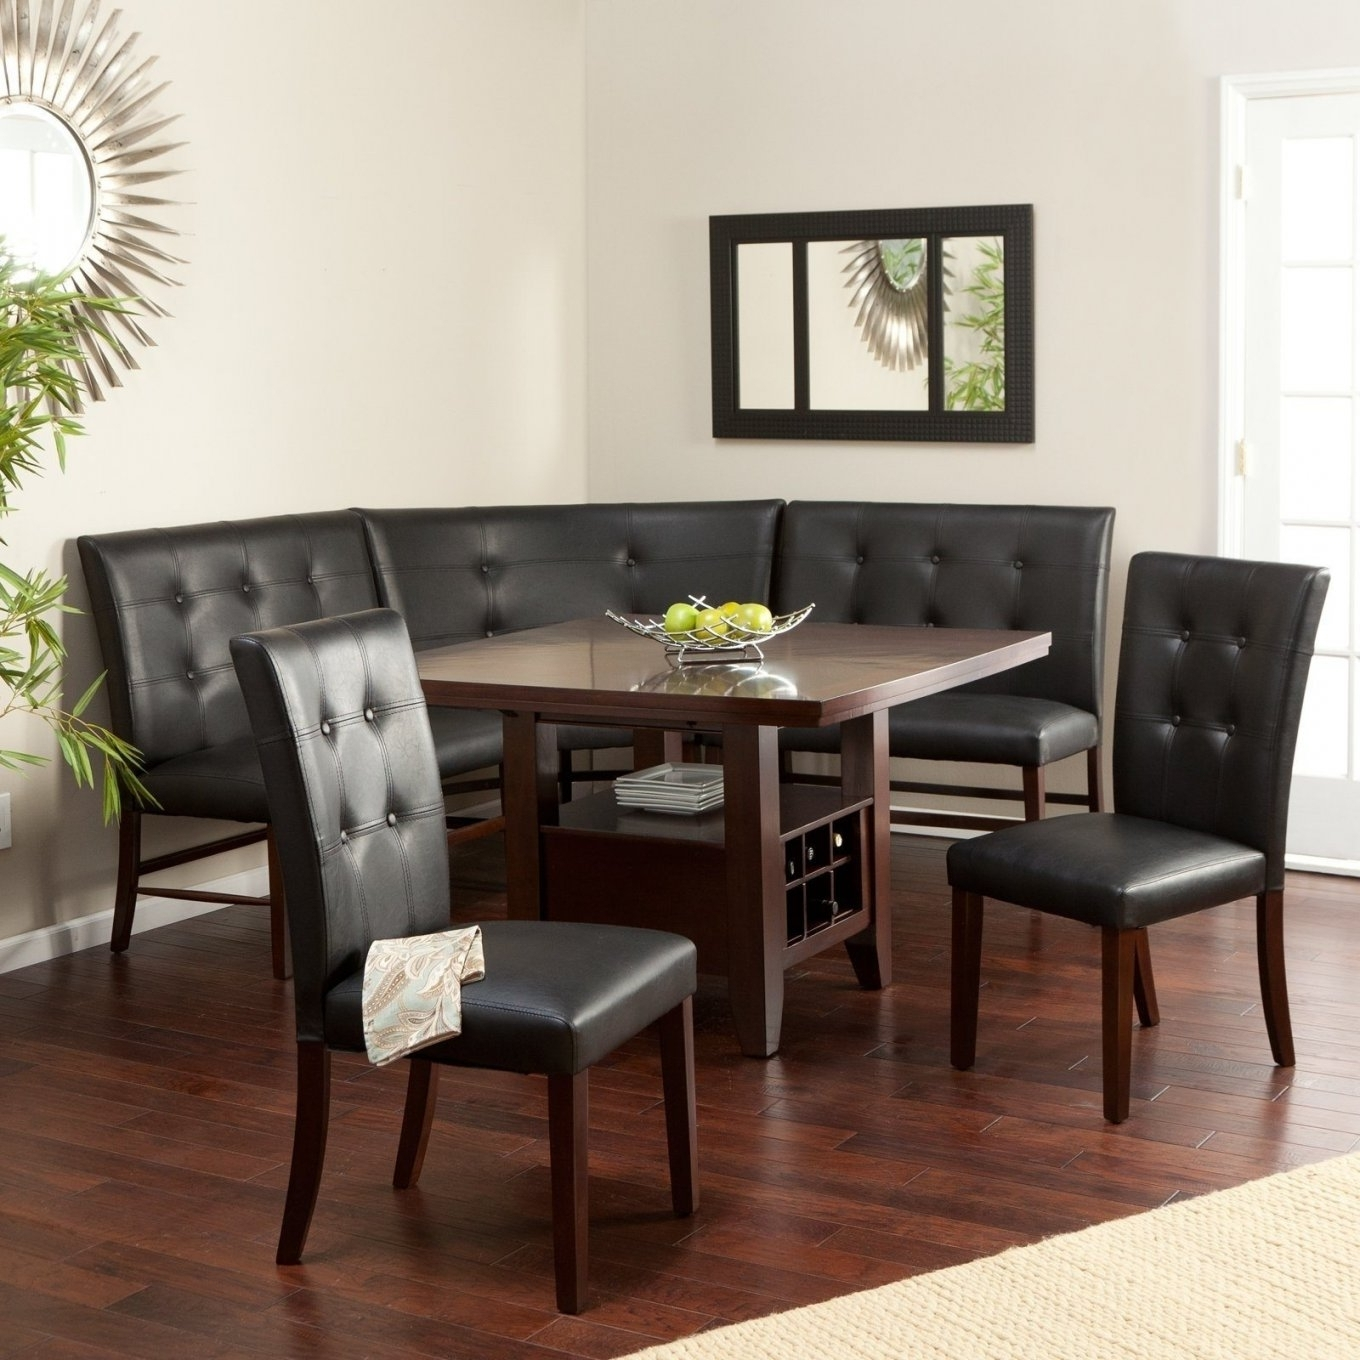 Latest 6 Person Round Dining Table Popular Tables Awesome And With Regard With 6 Person Round Dining Tables (View 6 of 25)